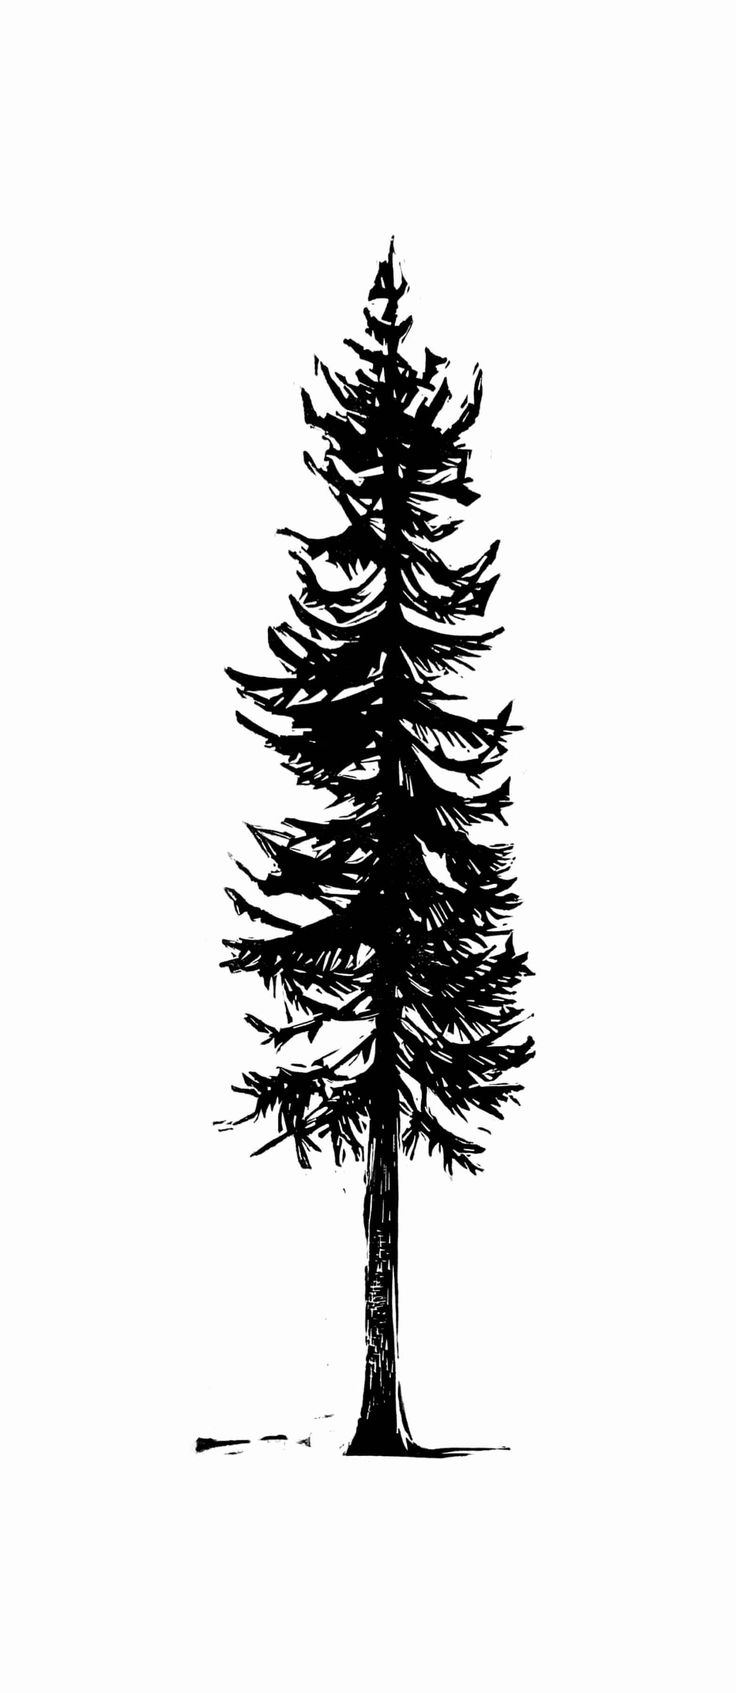 pine tree sketch beccy39s place pine trees pine sketch tree